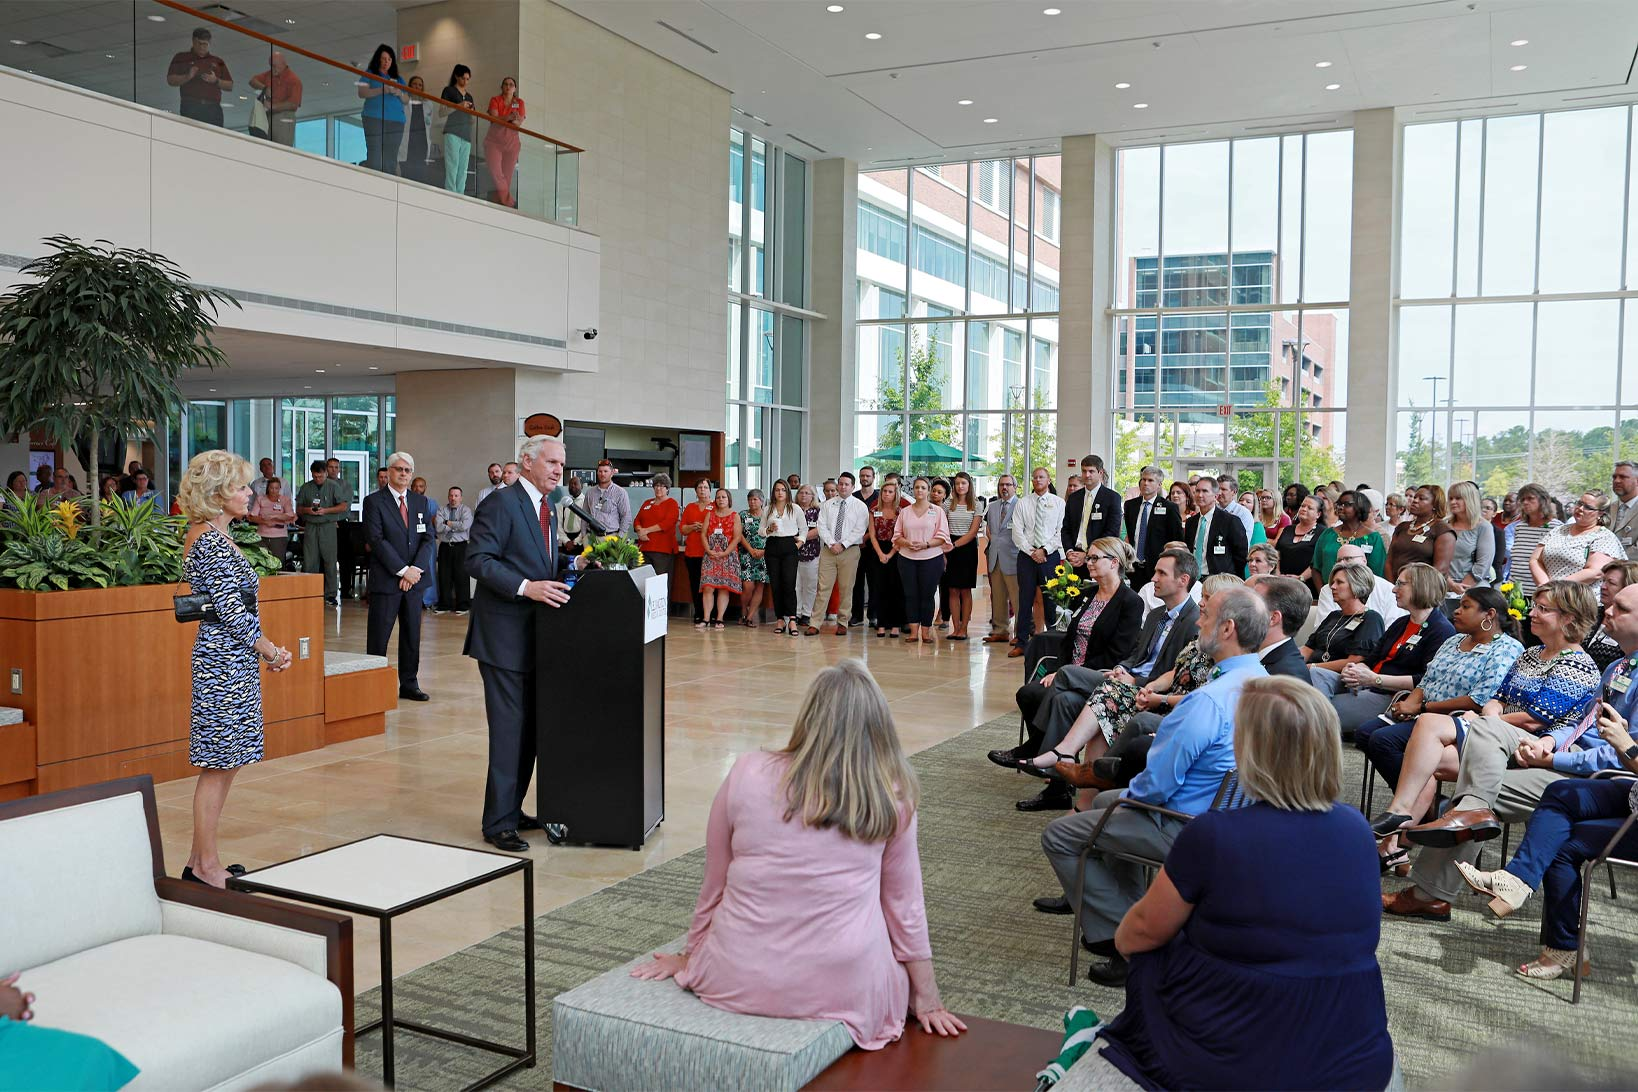 Governor Henry McMaster at a podium giving a speech in the lobby of Lexington Medical Center to an audience.